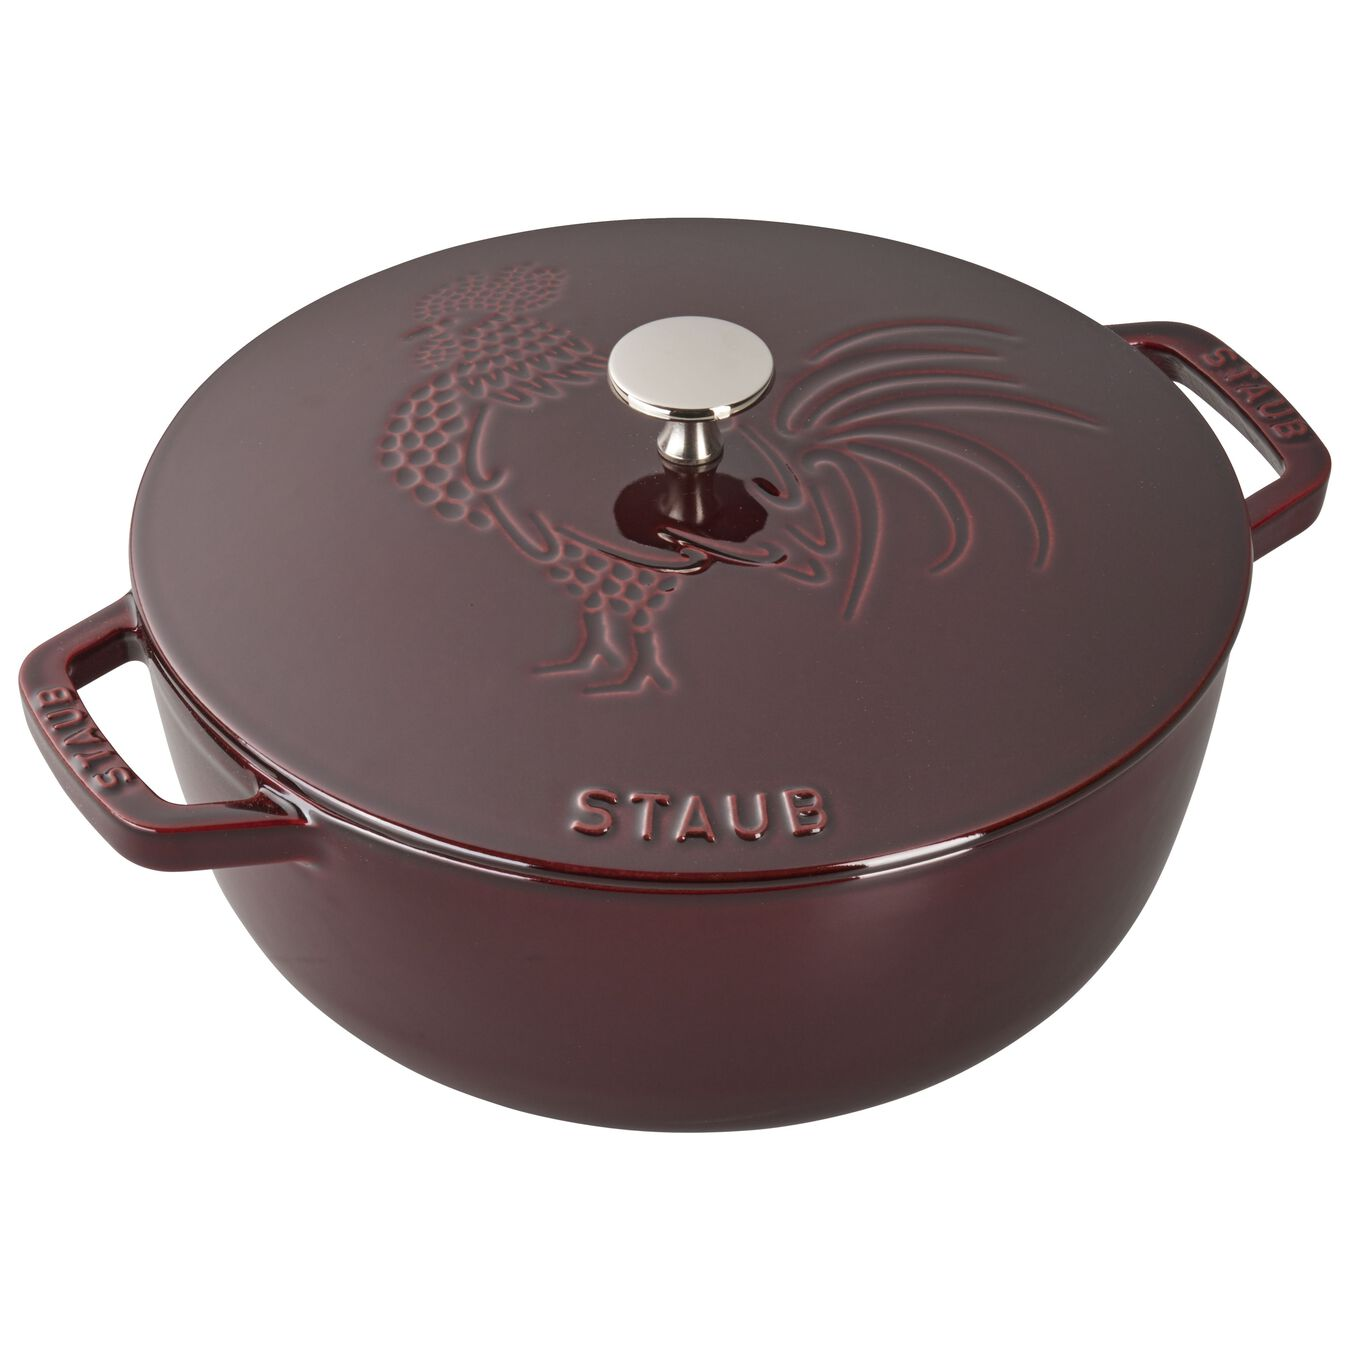 3.6 l Cast iron round French oven, Grenadine-Red,,large 8